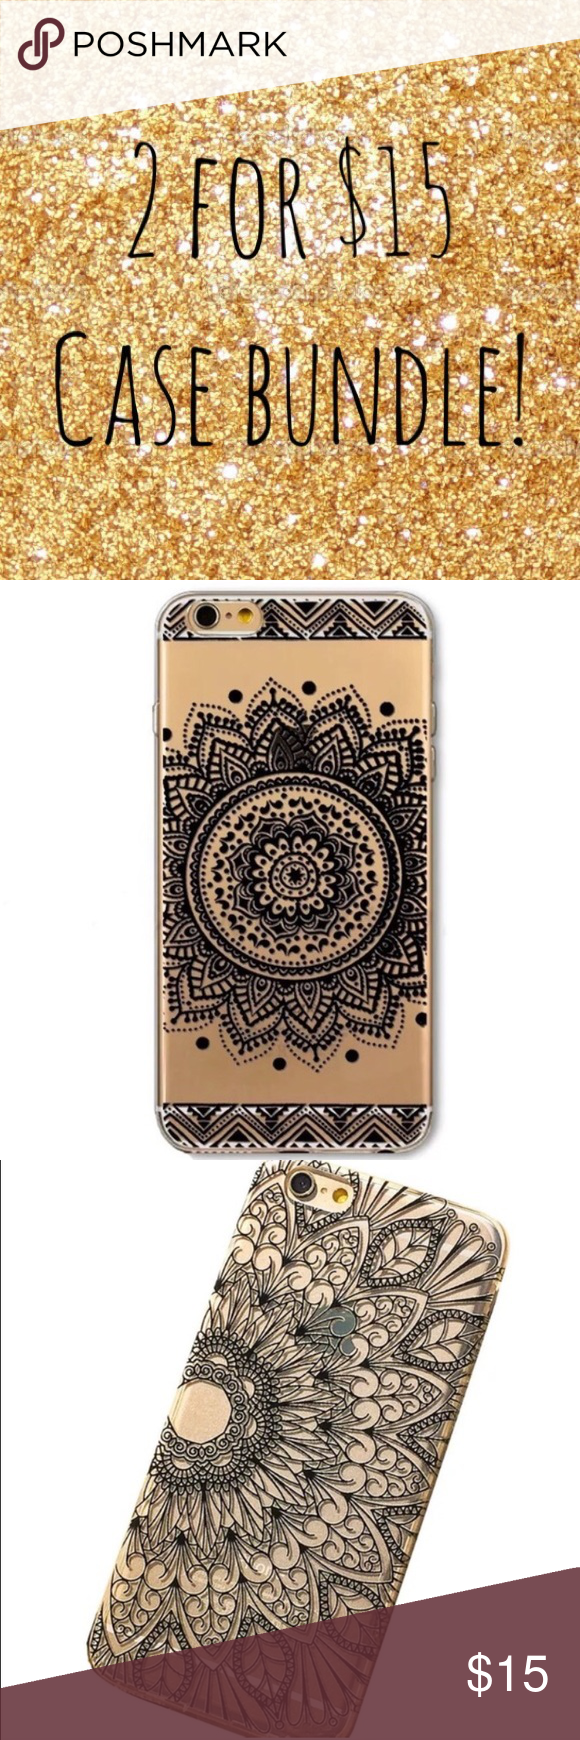 ❤️❤️❤️❤️ 2 iPhone 6/6s cases for $15! Accessories Phone Cases